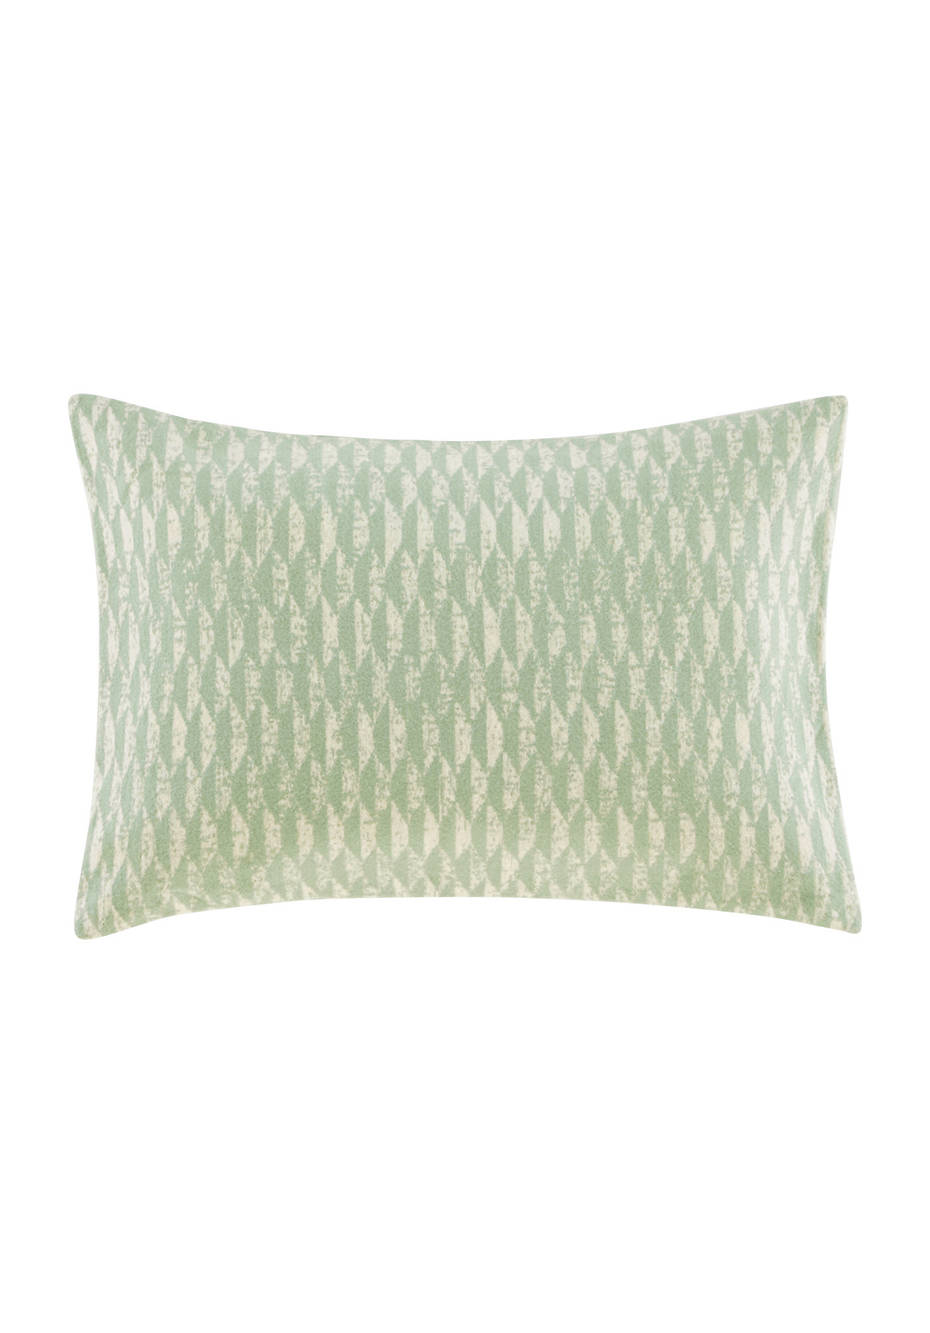 Letia cushion cover made from pure organic cotton